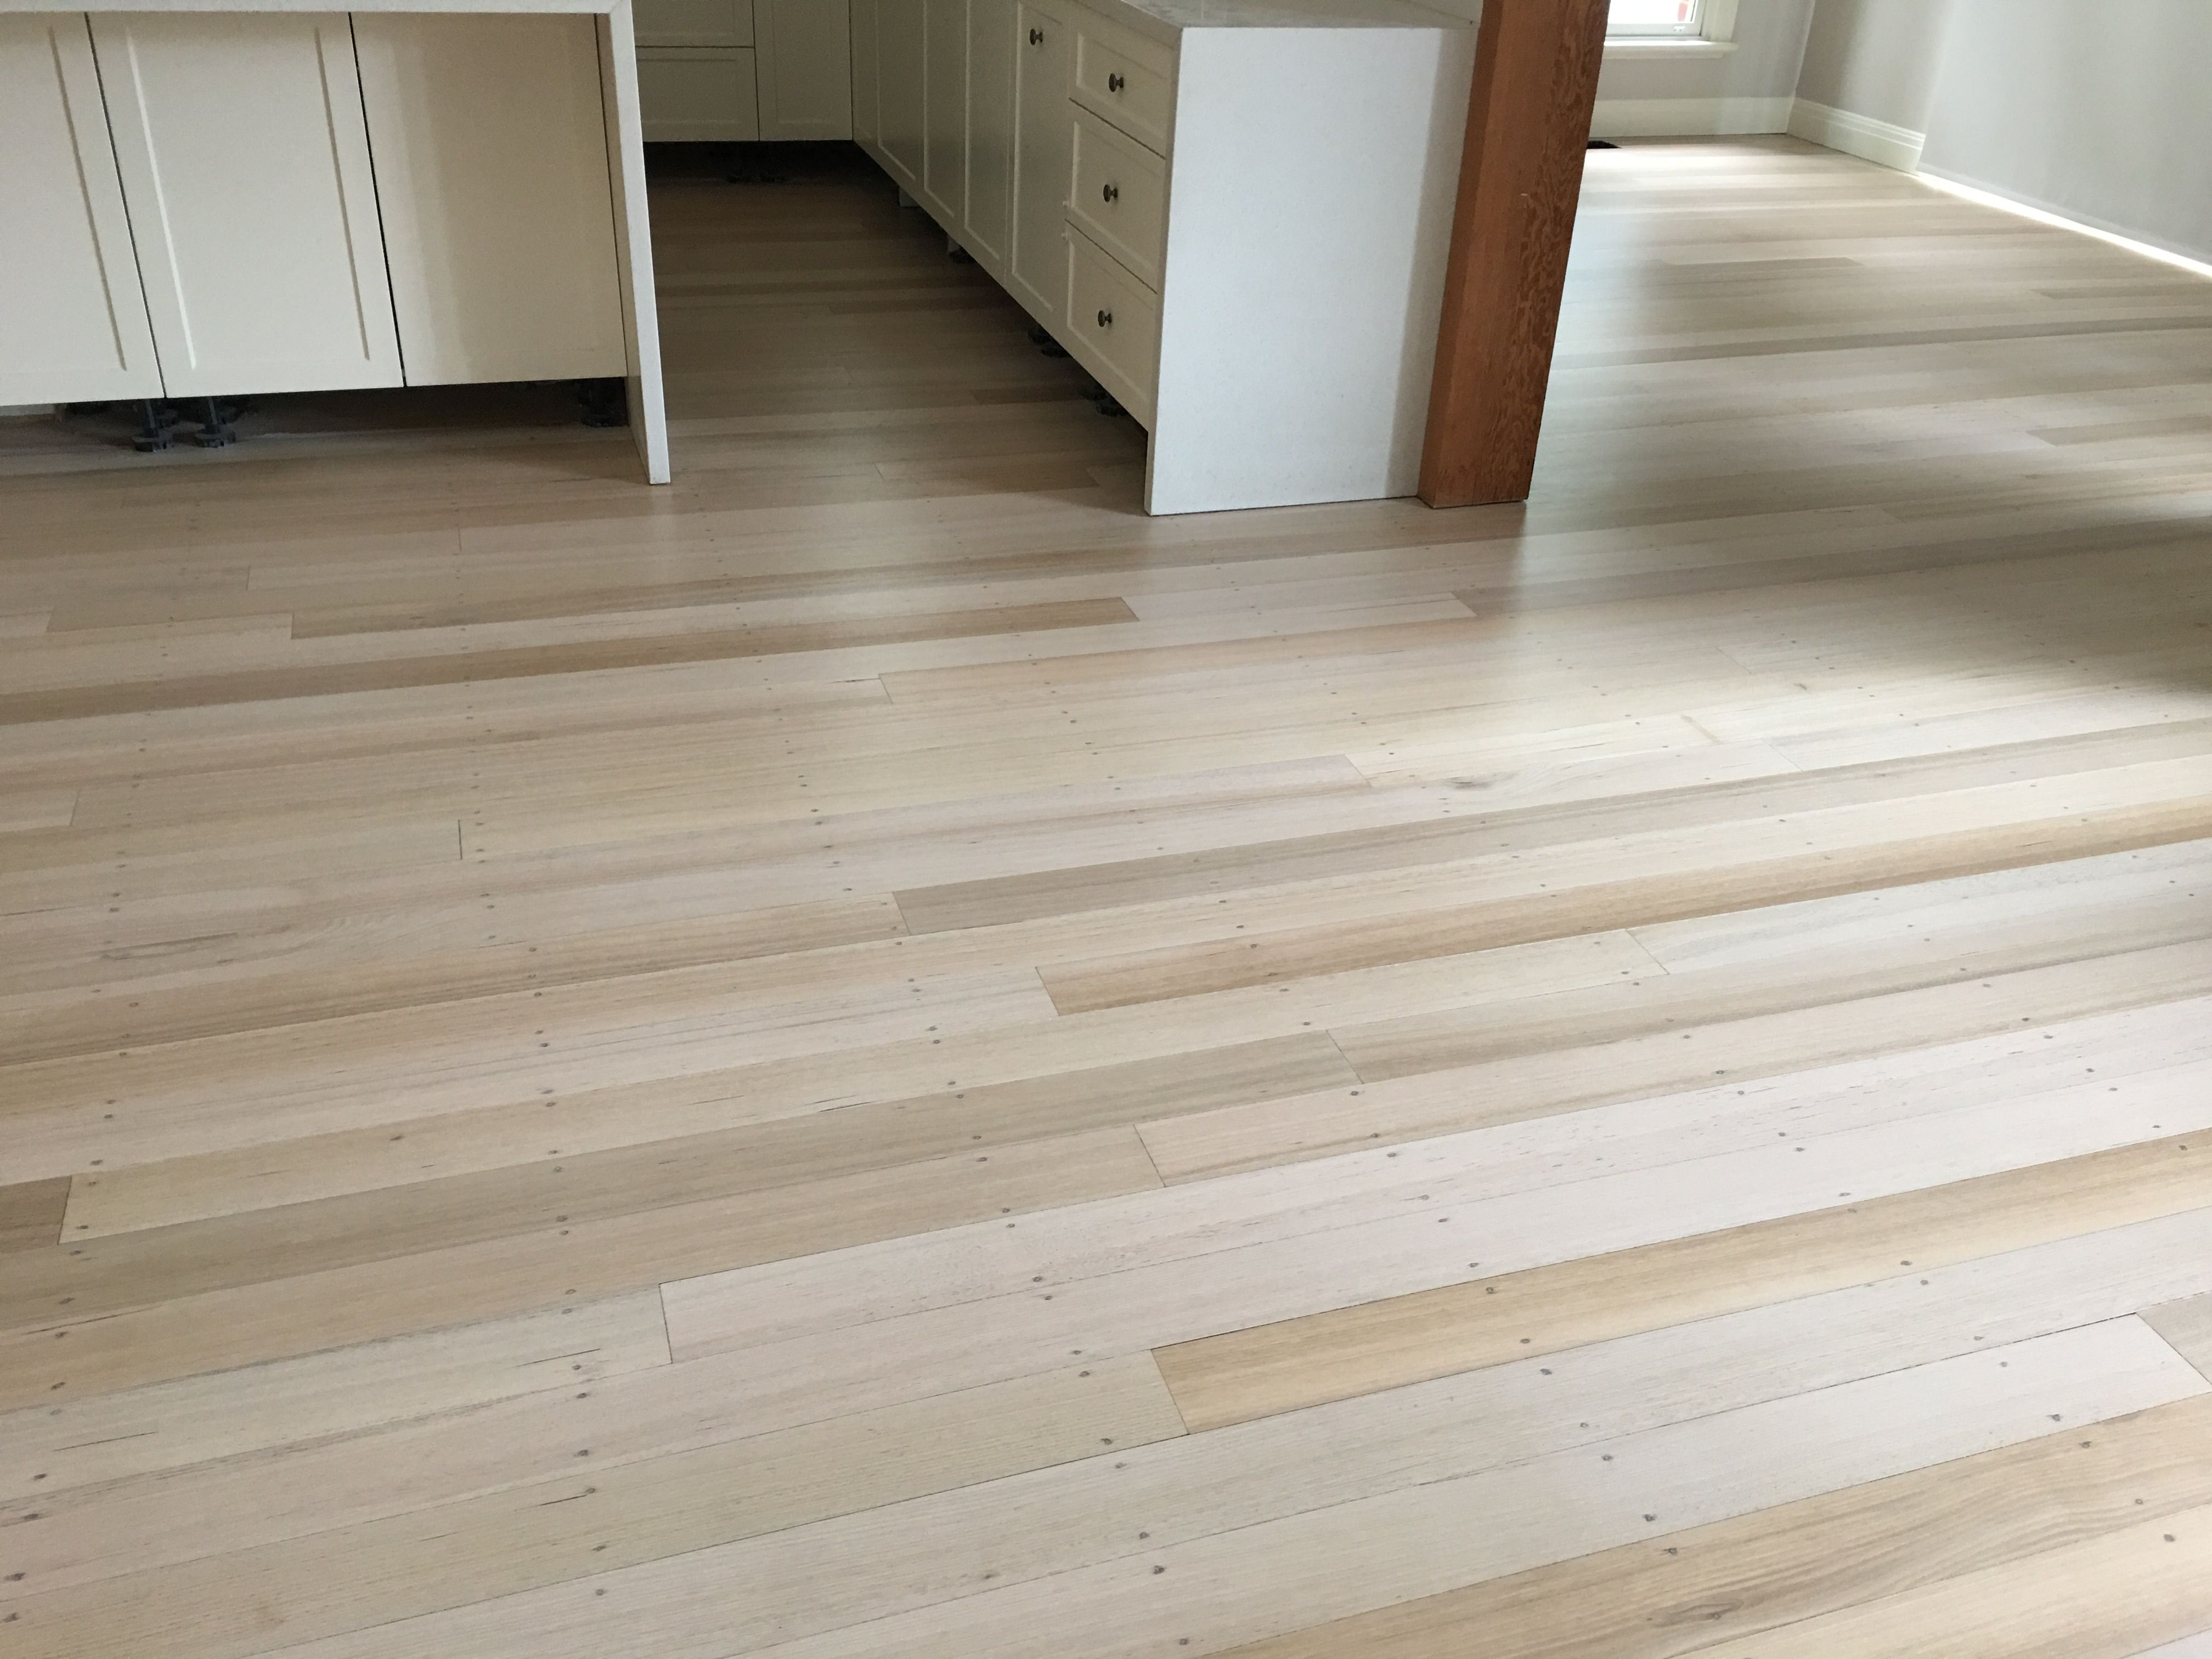 Flooring eclectic hardwood flooring boston by paris ceramics - Timber Flooring Limewash White On New Tas Oak Previously Stained Dark Color